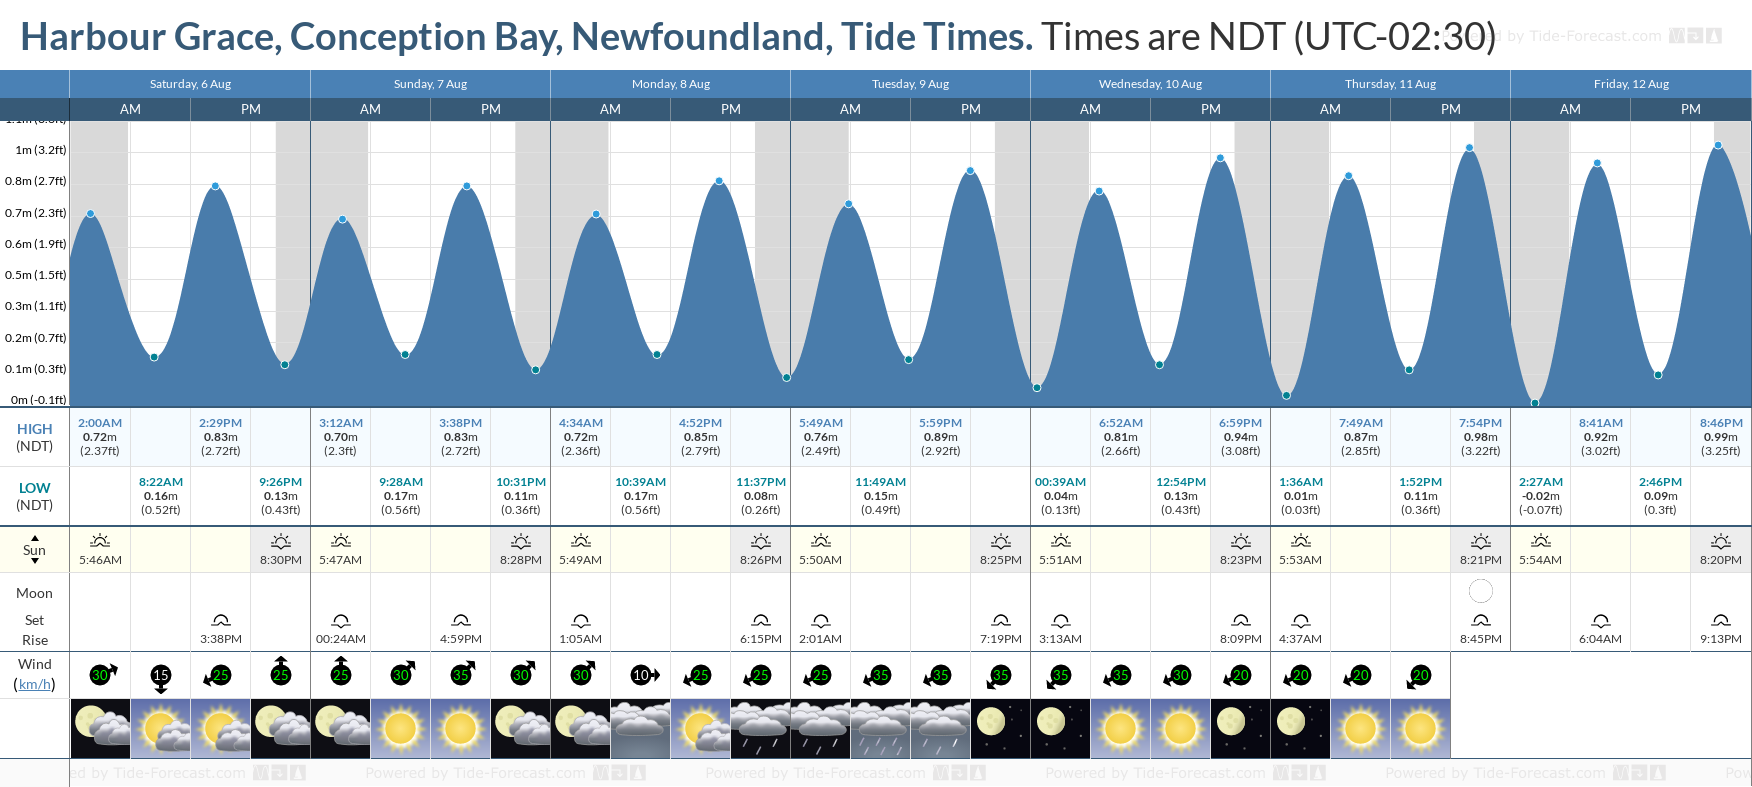 Harbour Grace, Conception Bay, Newfoundland Tide Chart including high and low tide tide times for the next 7 days